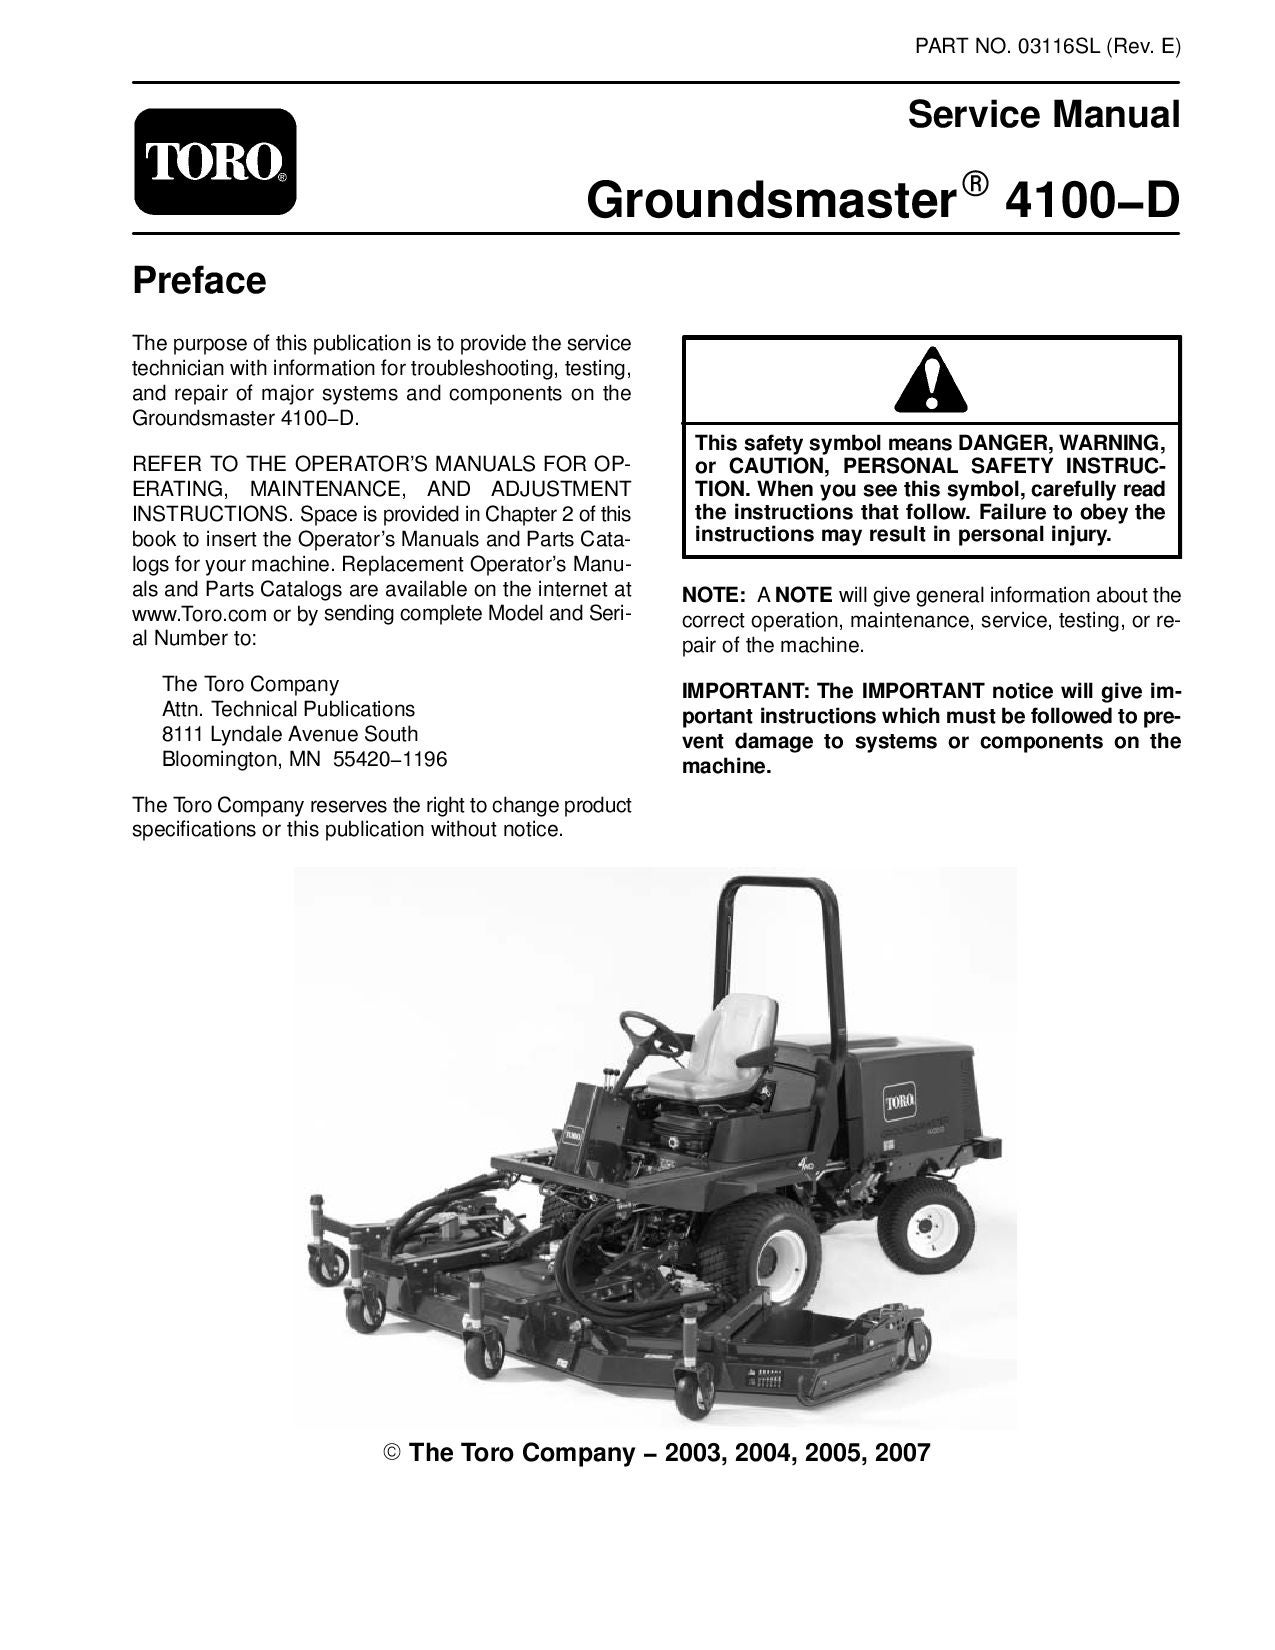 page_1 03116sl pdf groundsmaster 4100 d (model 30411) (rev e) dec, 2007 Toro Groundsmaster 117 Parting Out at eliteediting.co